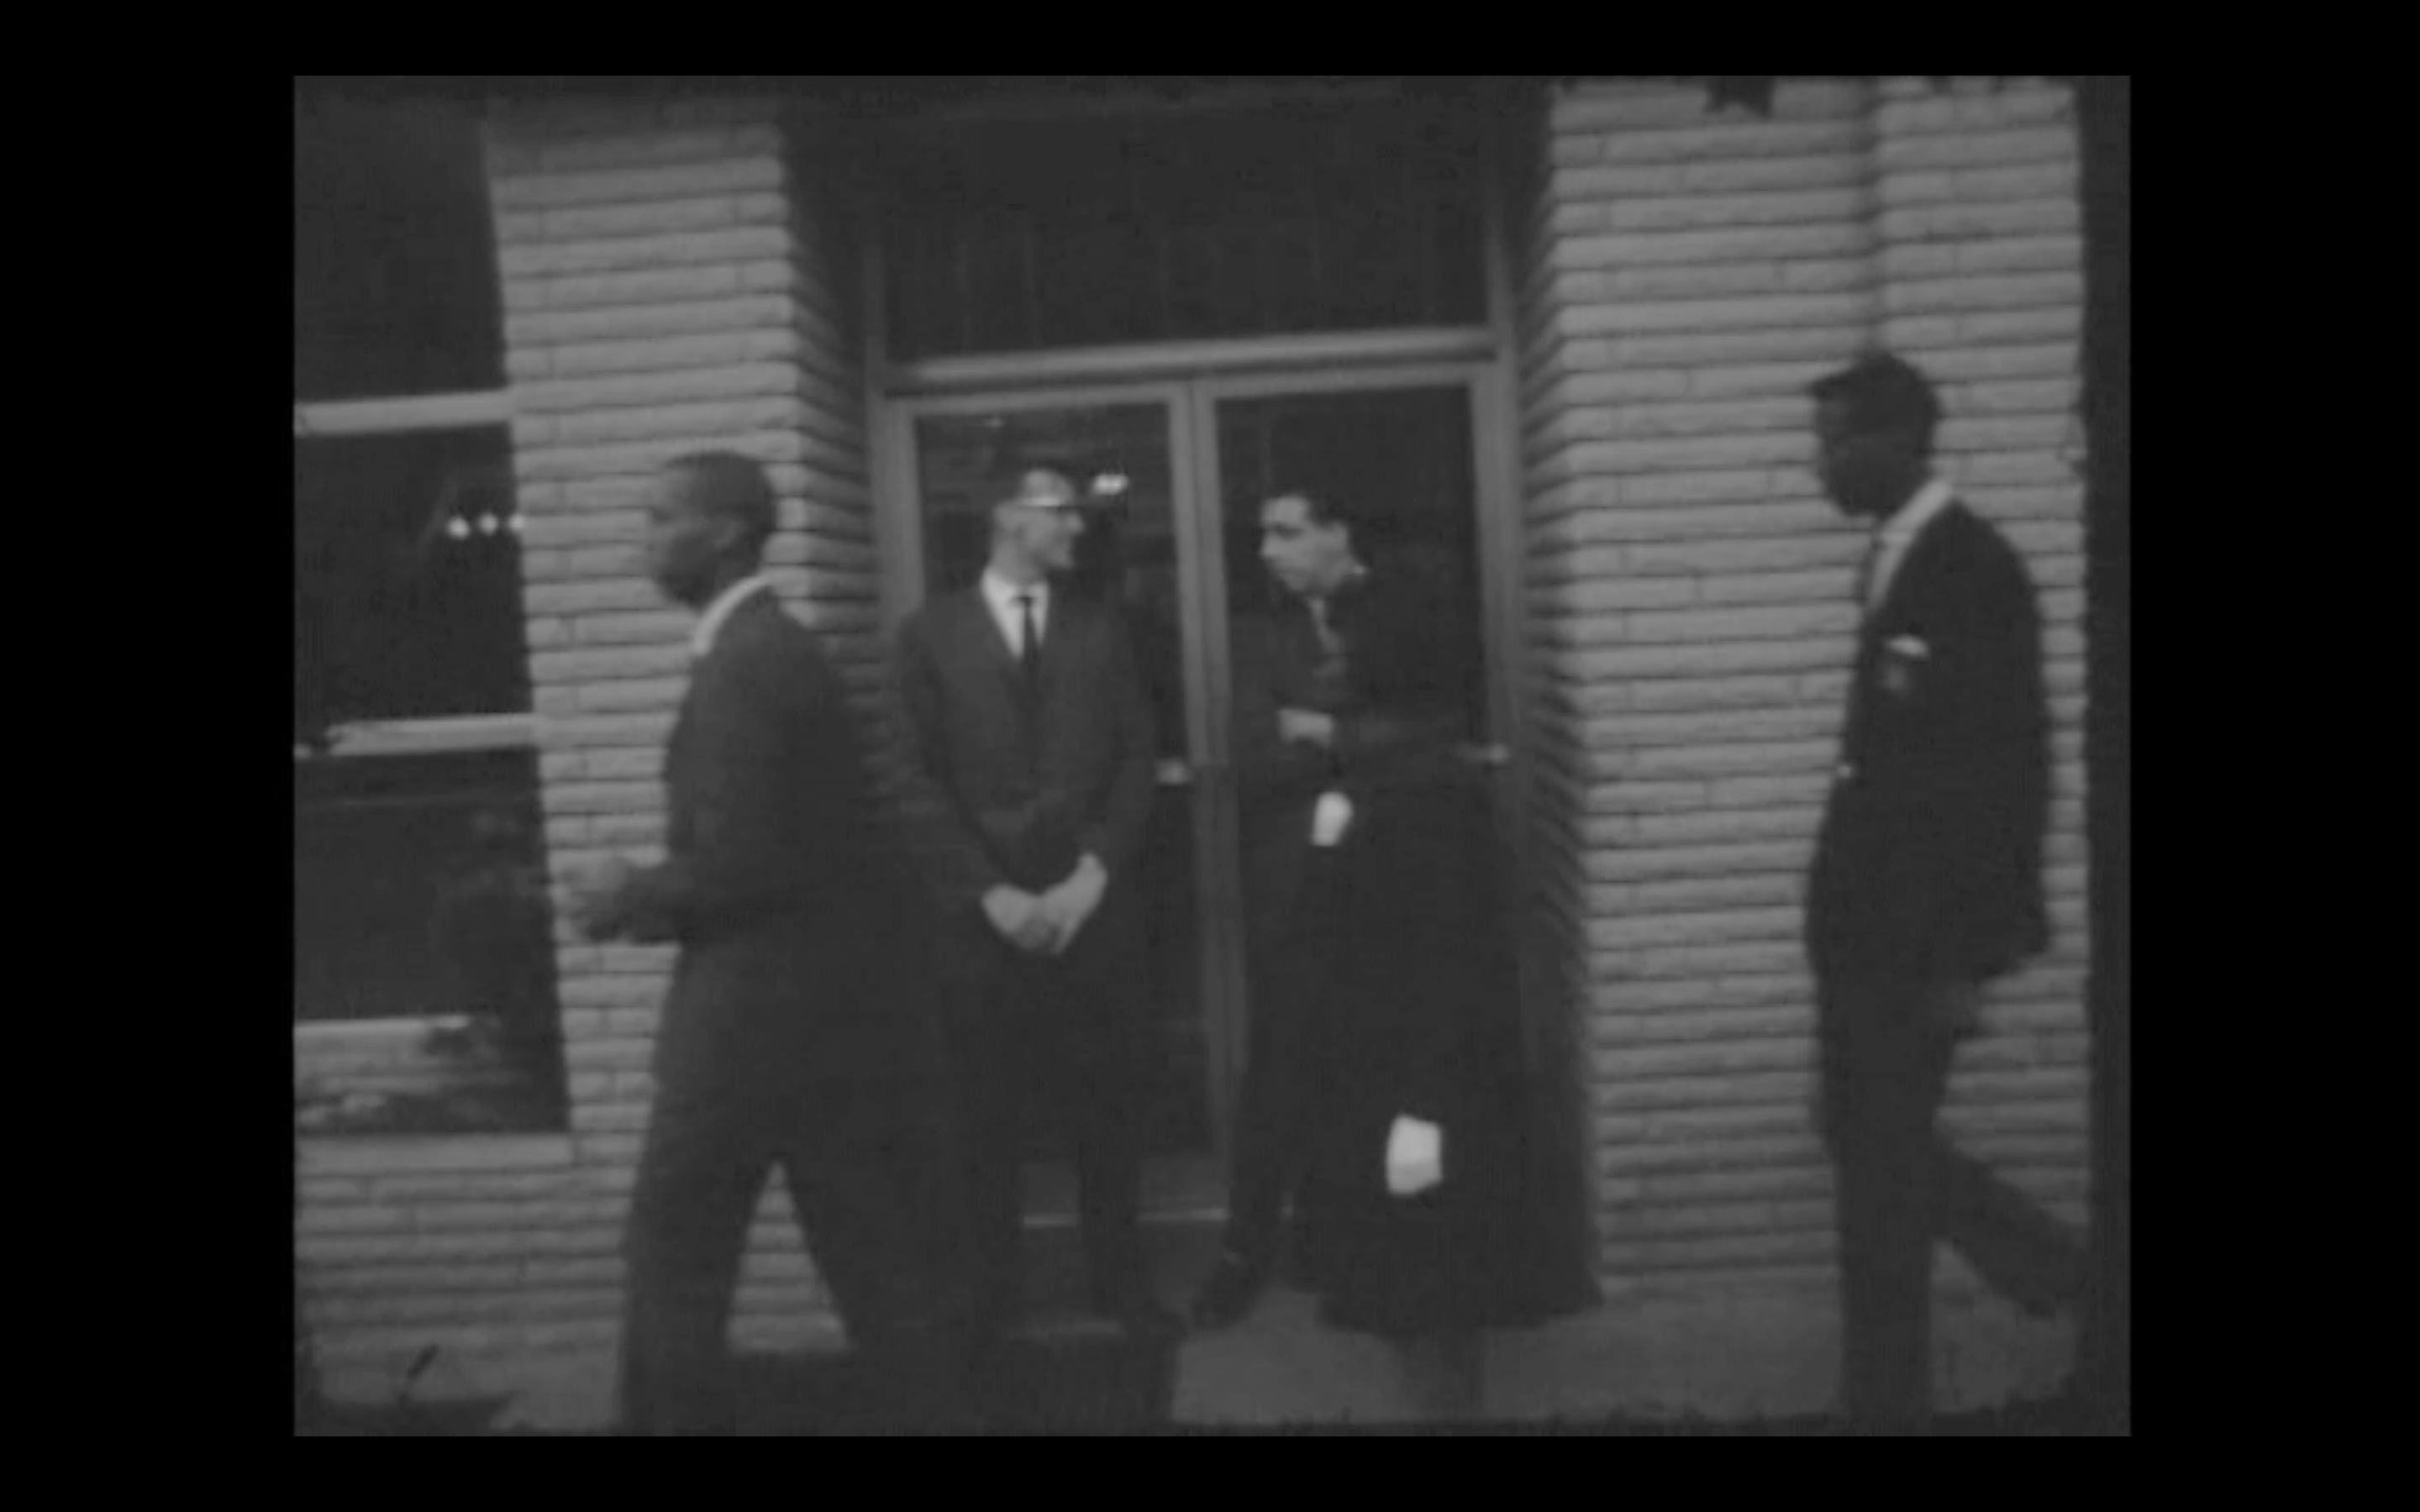 The guards blocking the door to keep blacks from entering on May 1, 1963.